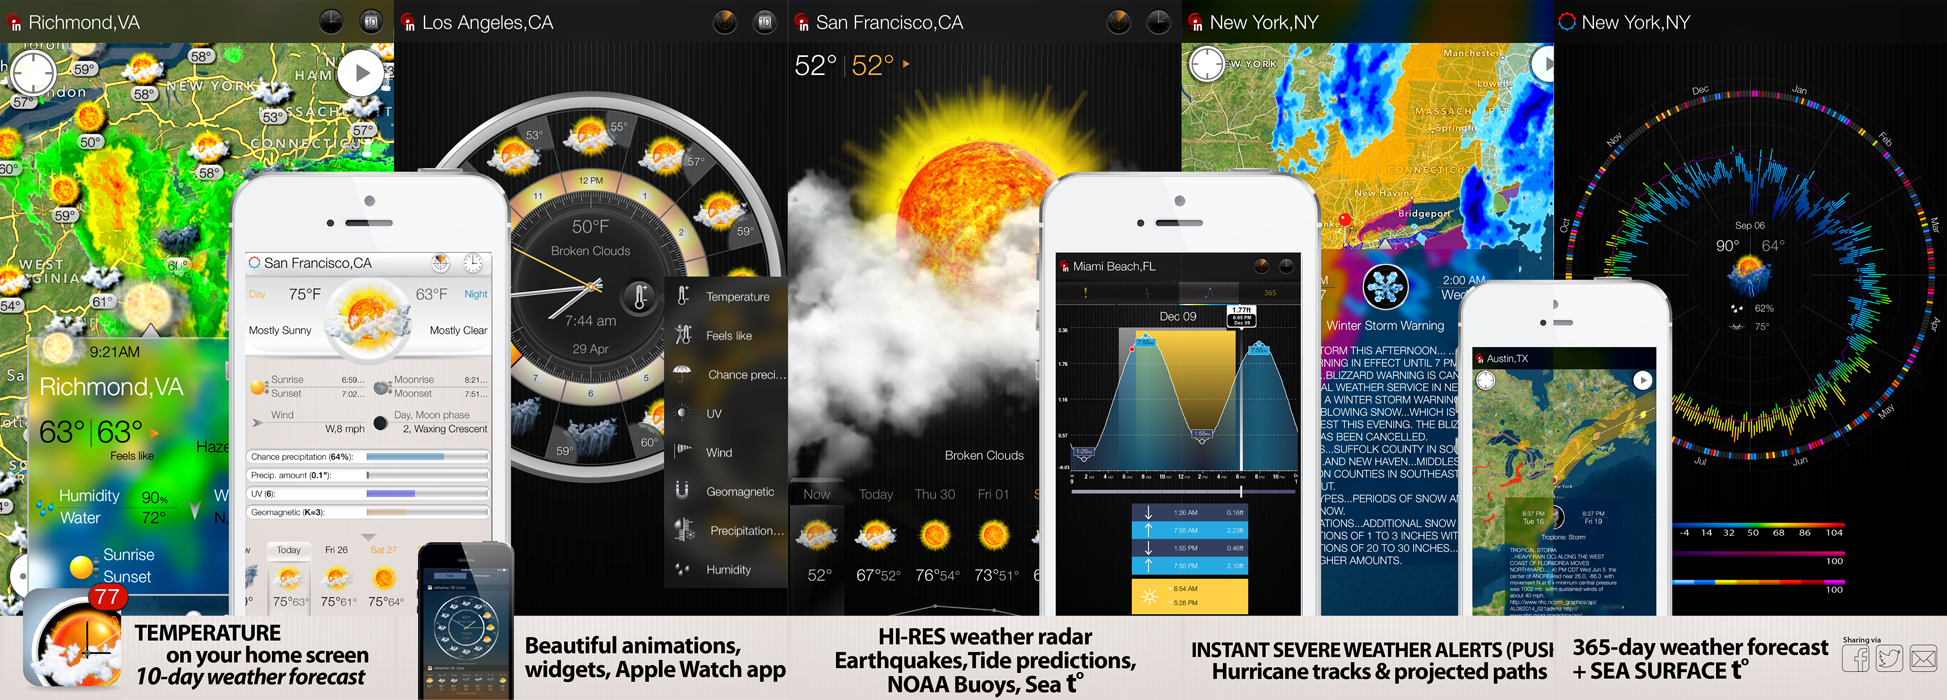 eweather-hd-3-5-full-weather-app-iphone-